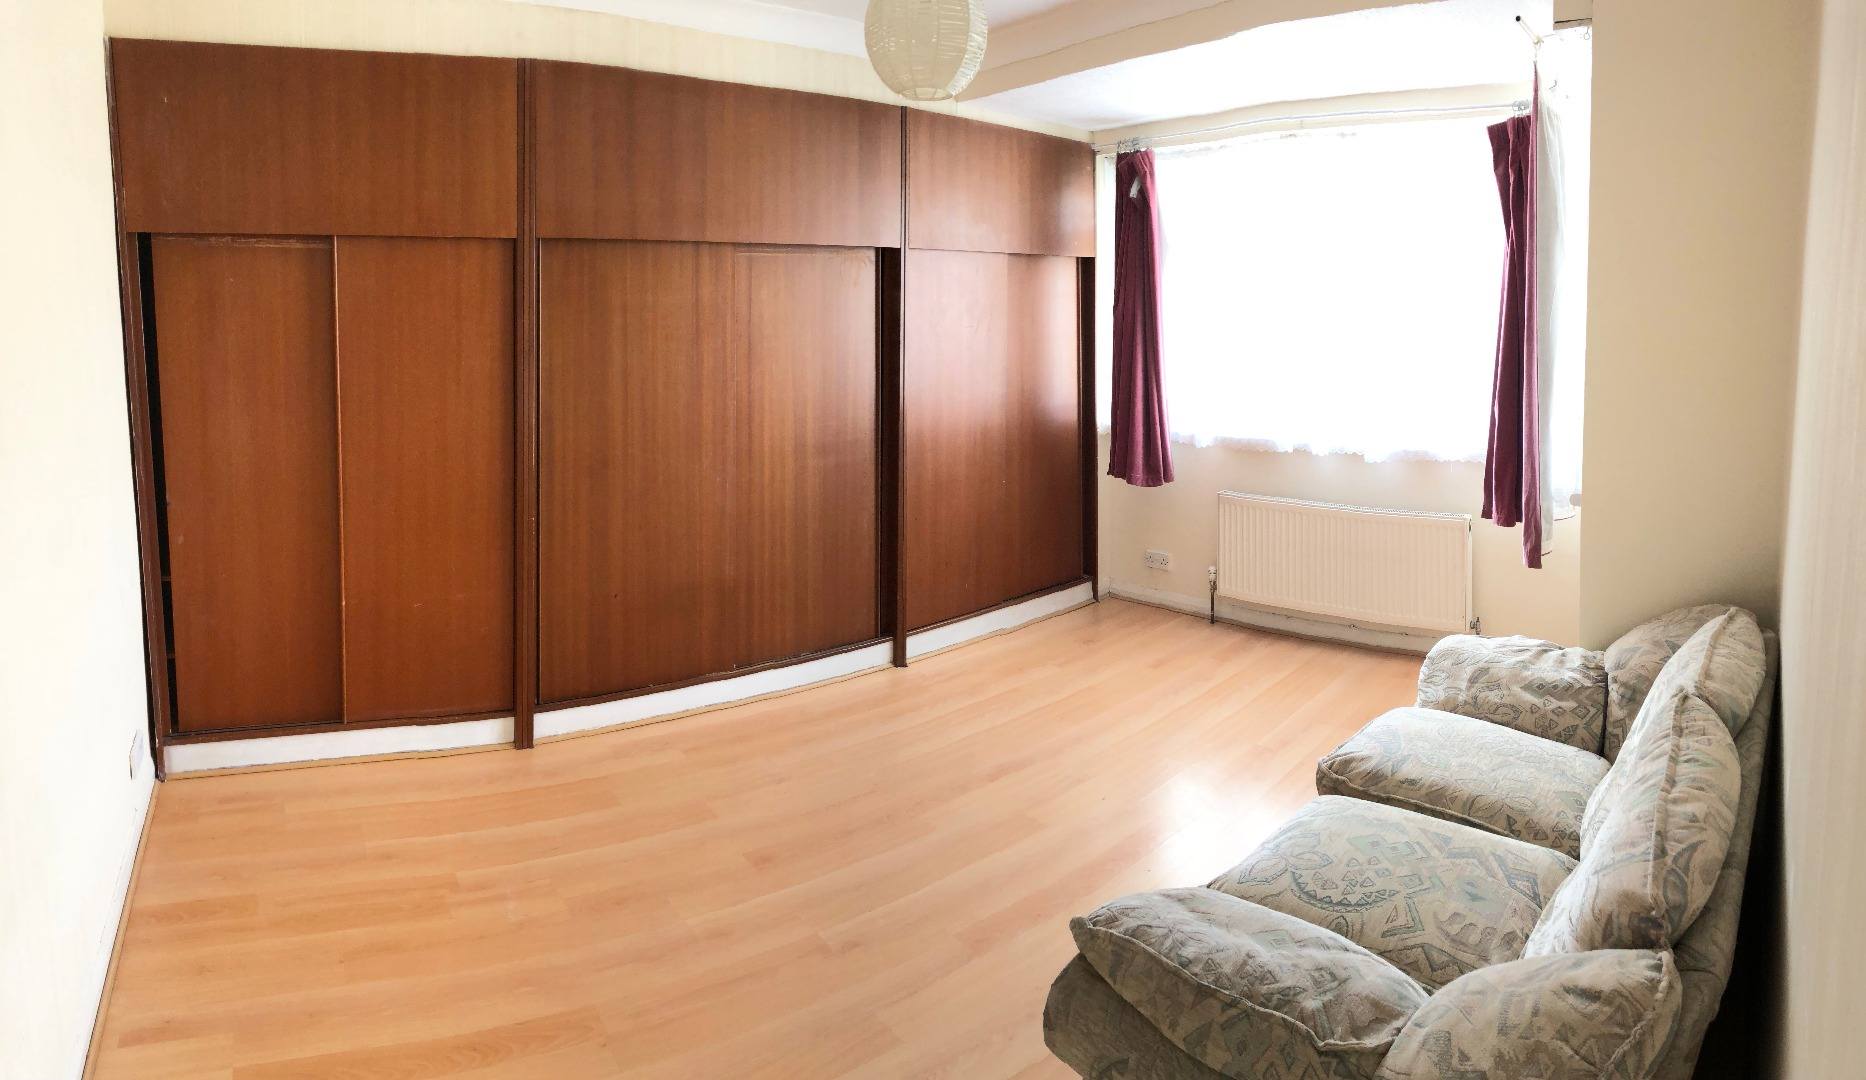 2 bed Flat to rent on Lyndhurst Avenue - Property Image 1